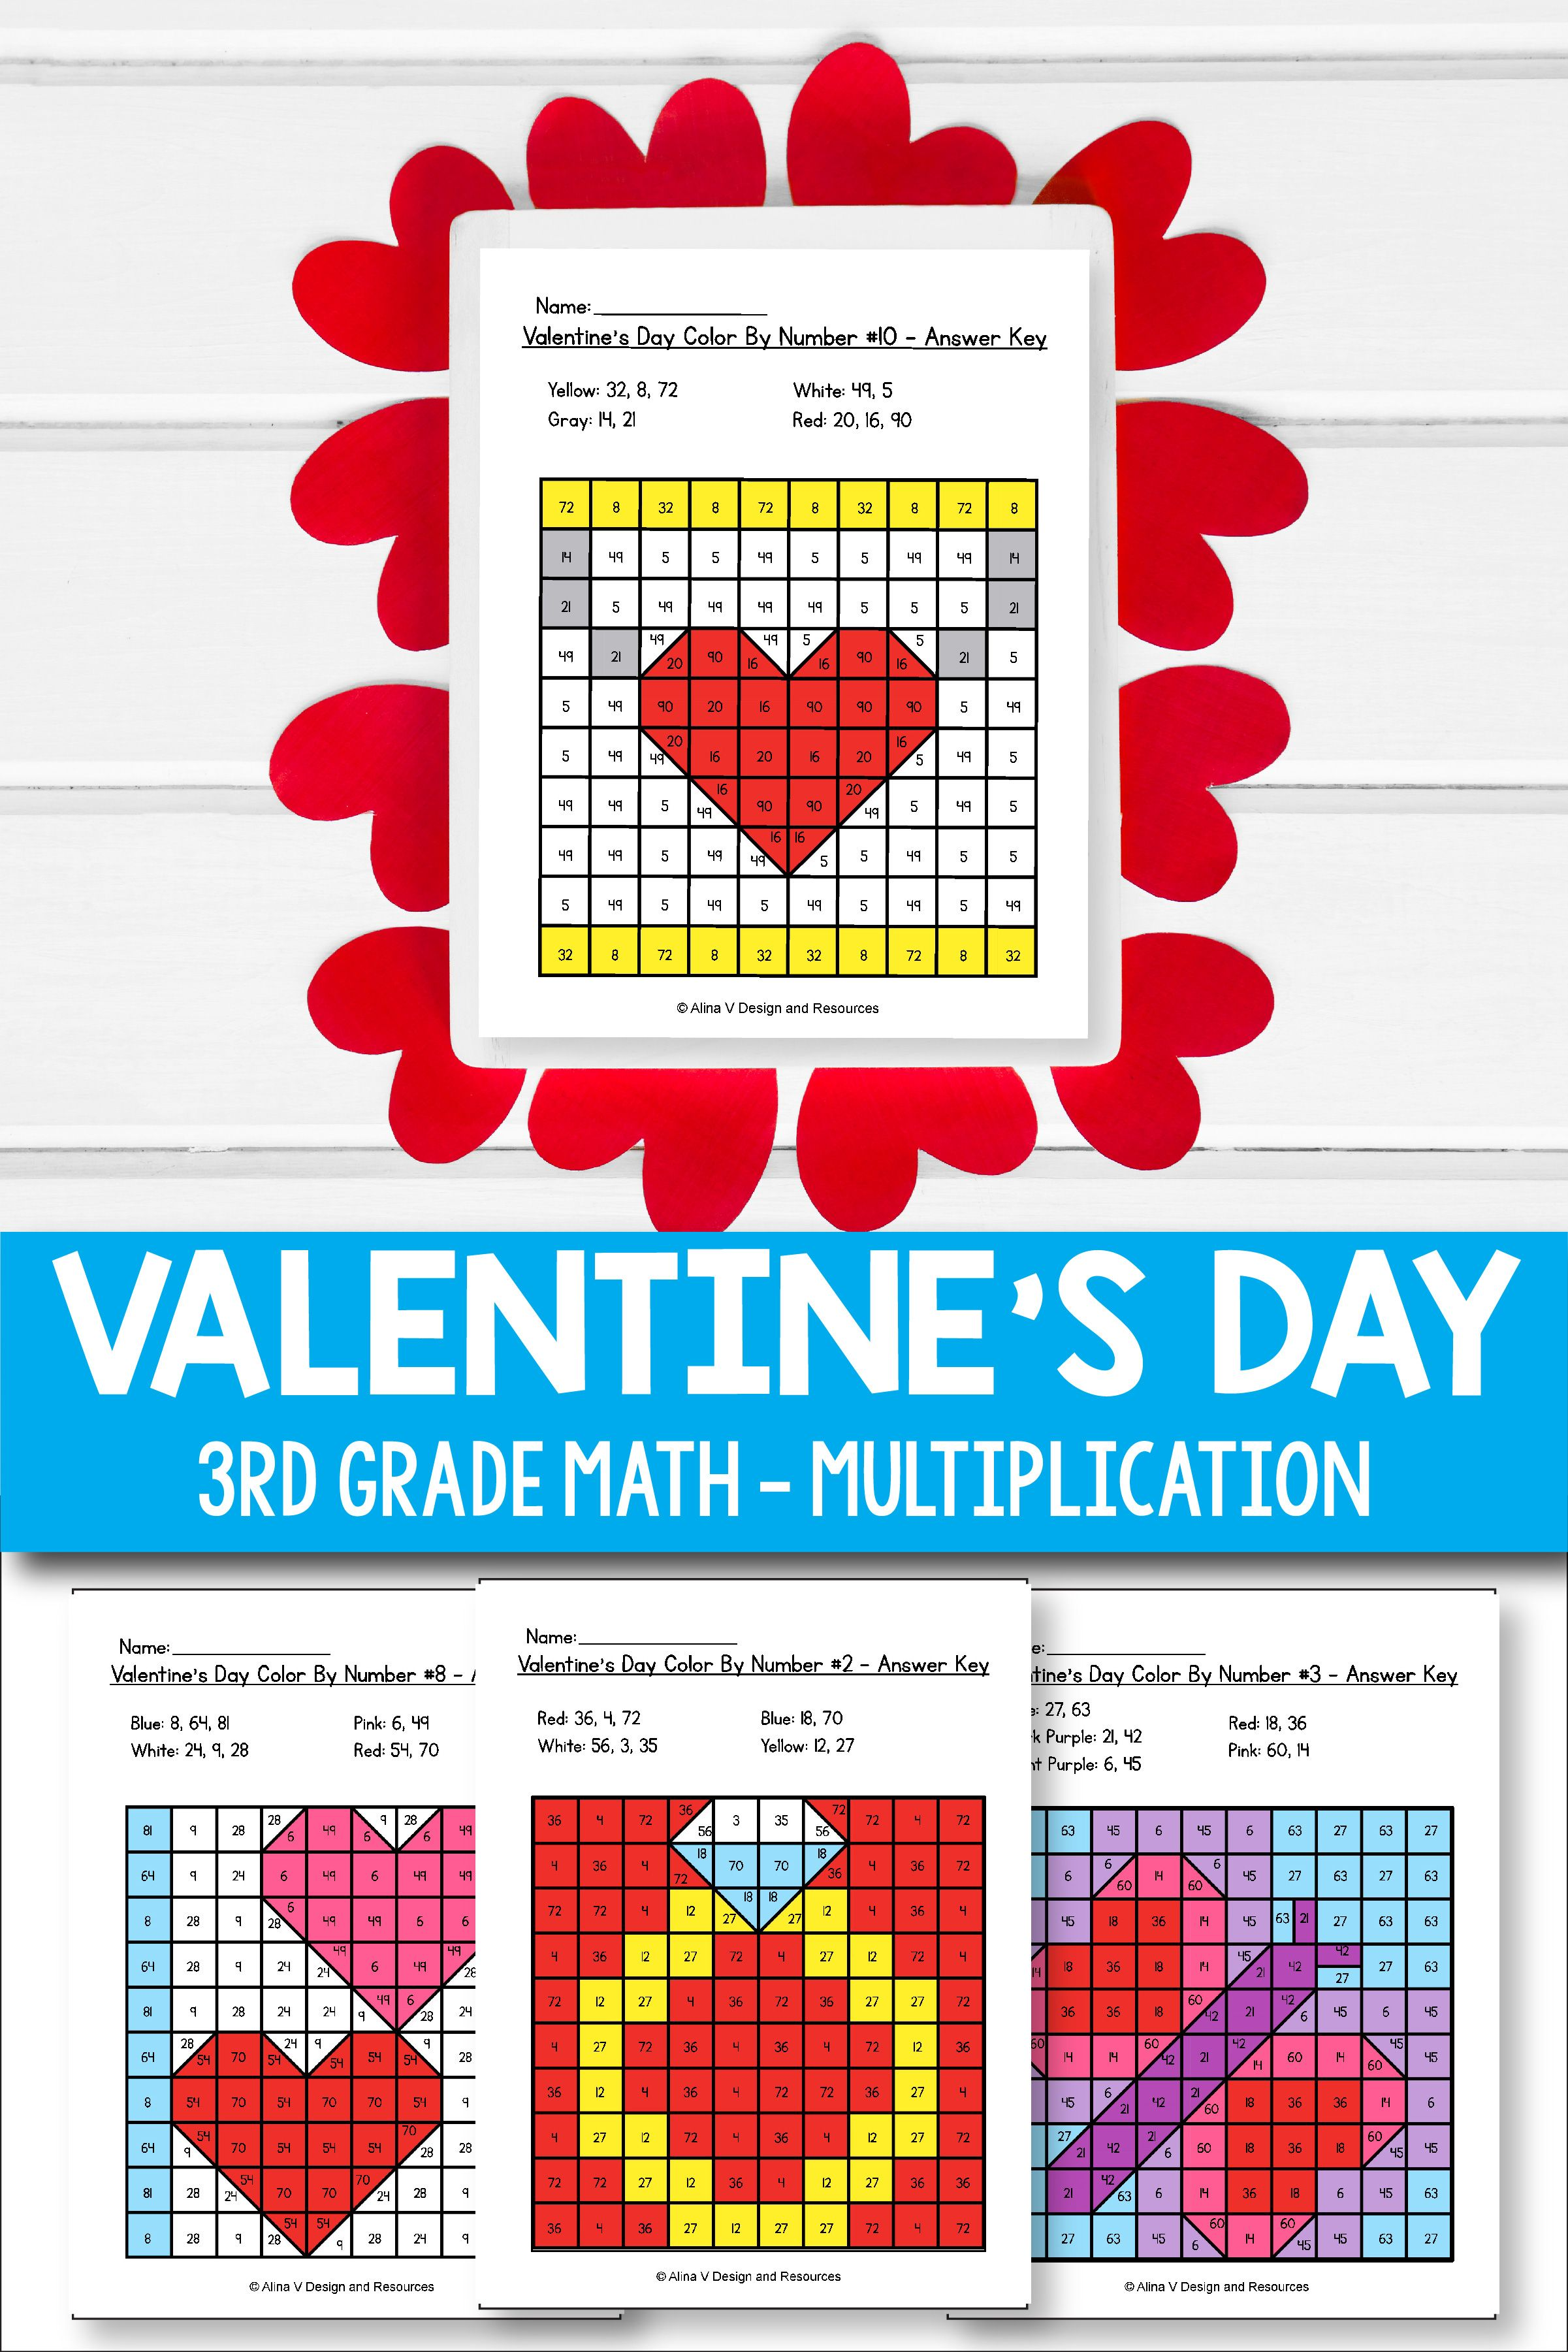 hight resolution of Valentine's Day Multiplication Math Worksheets for 3rd grade kids is fun  with these hundreds chart printabl…   Fun printables